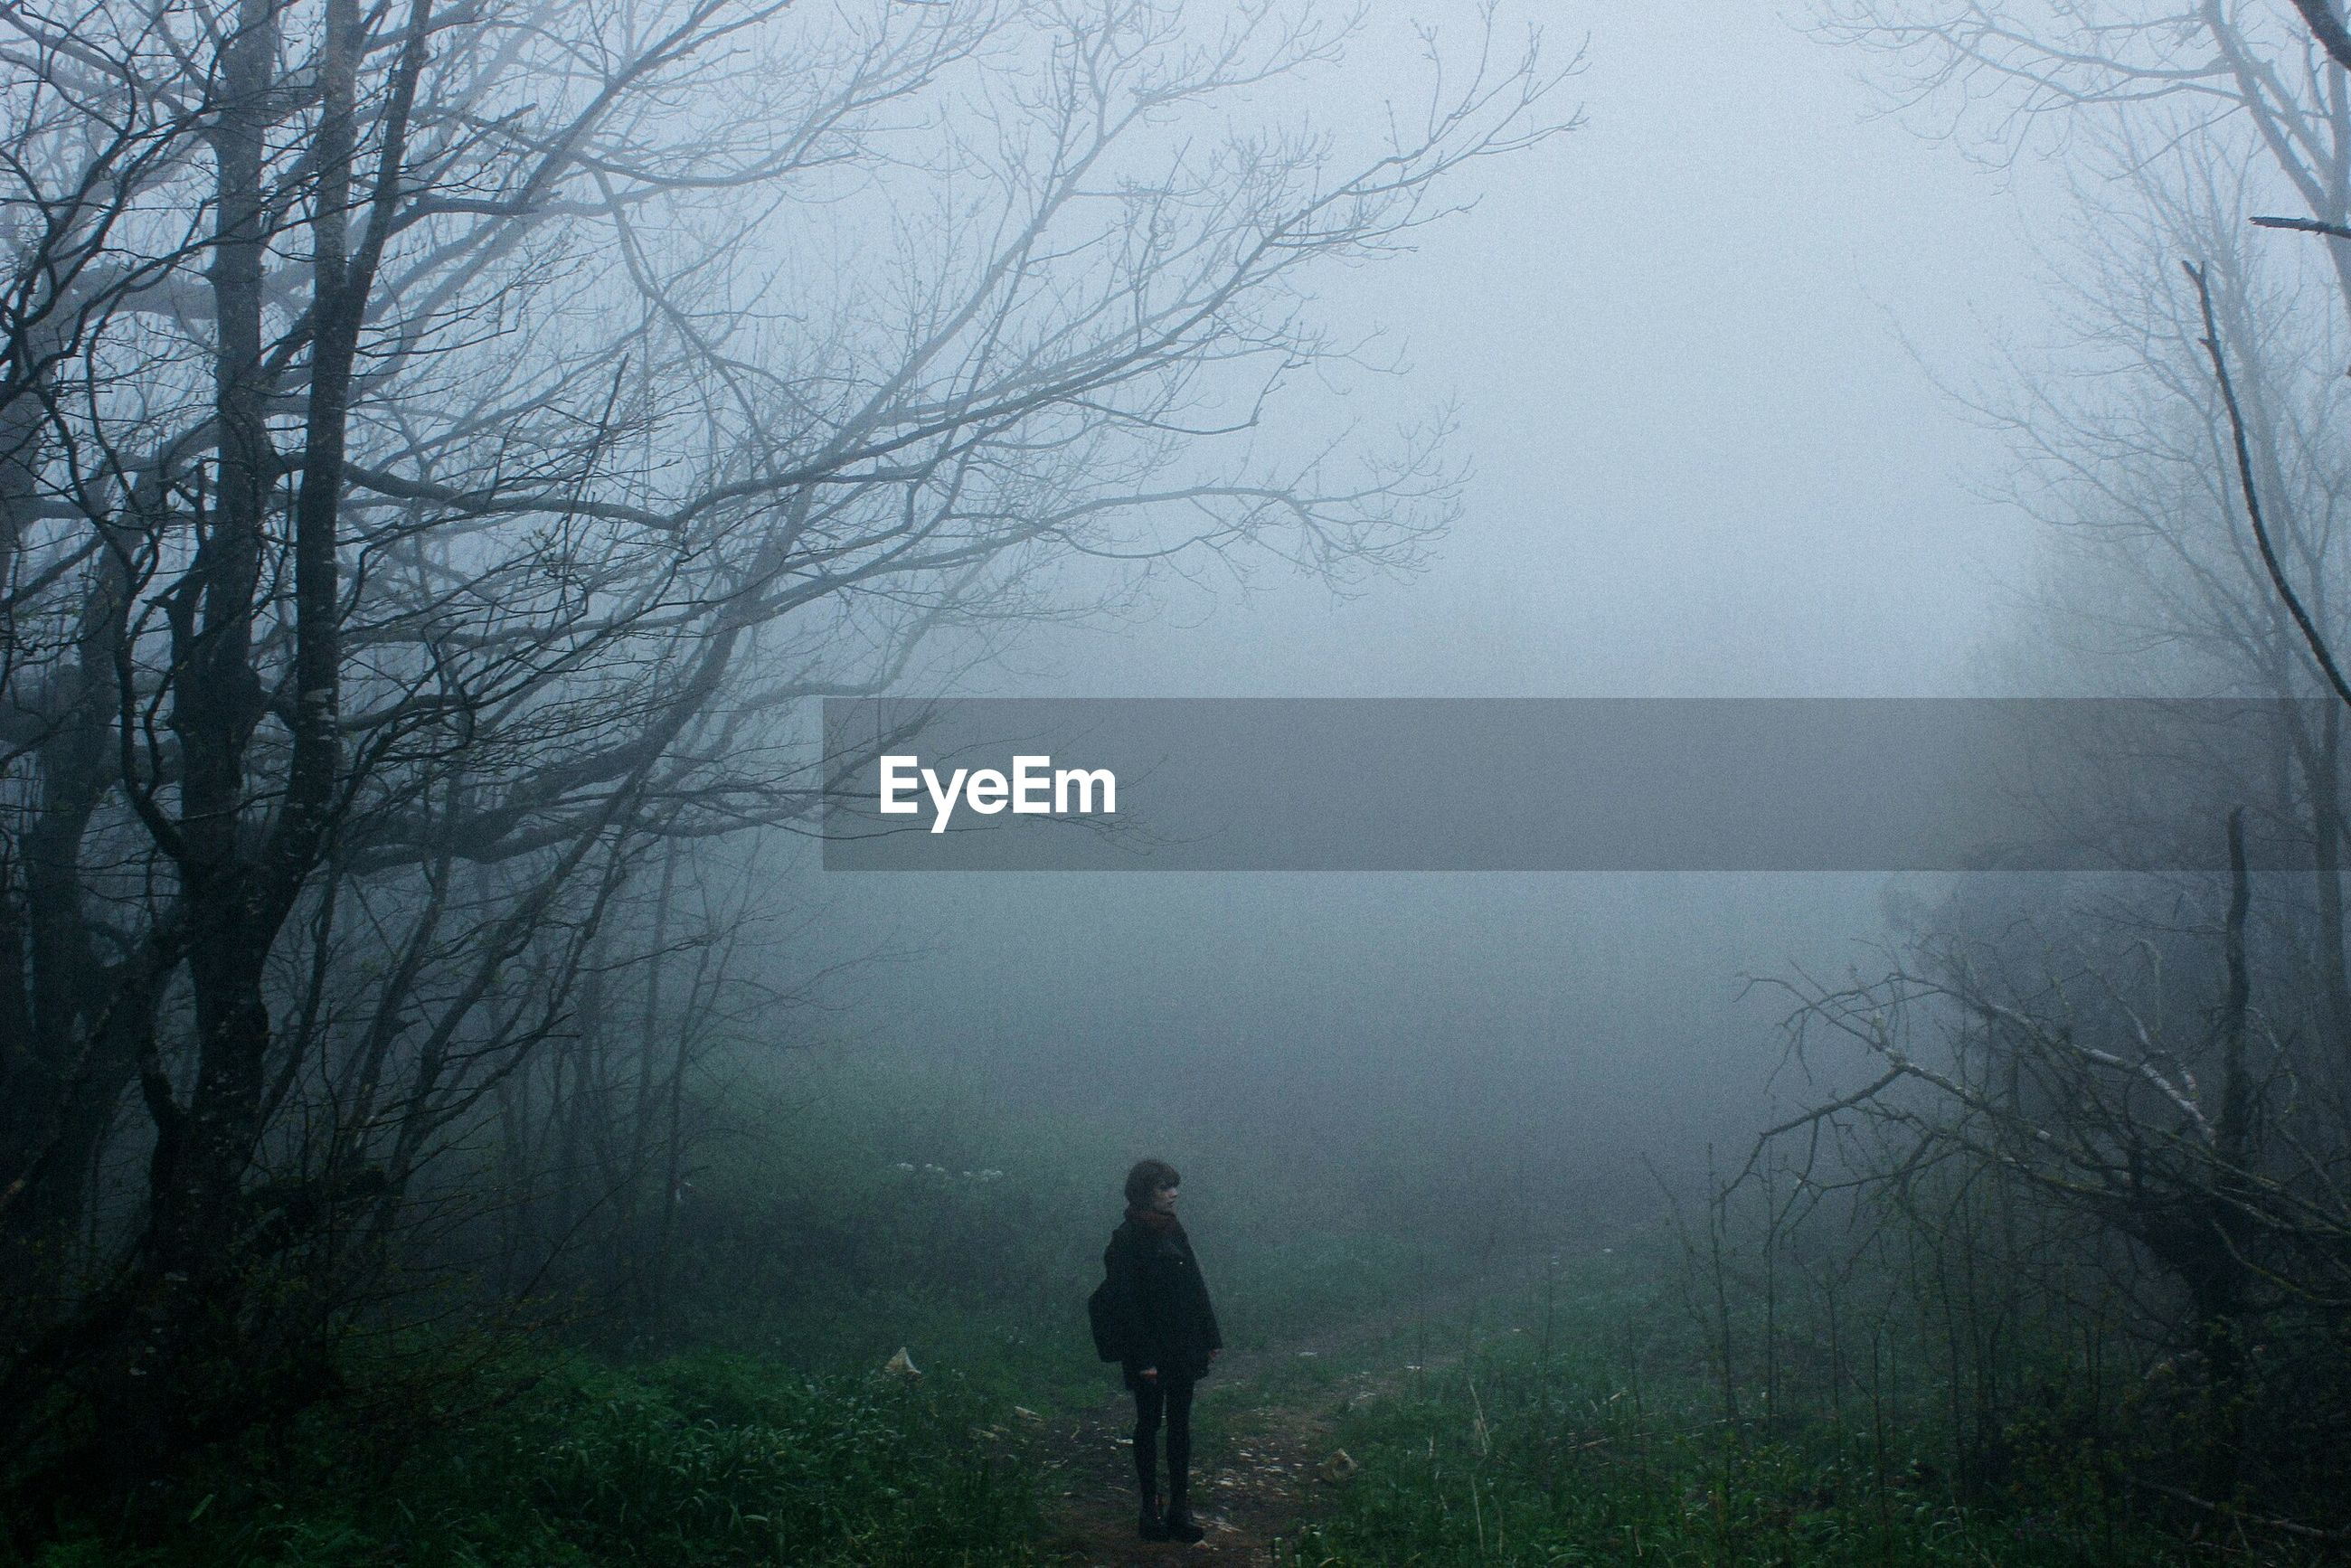 Lone person in foggy forest